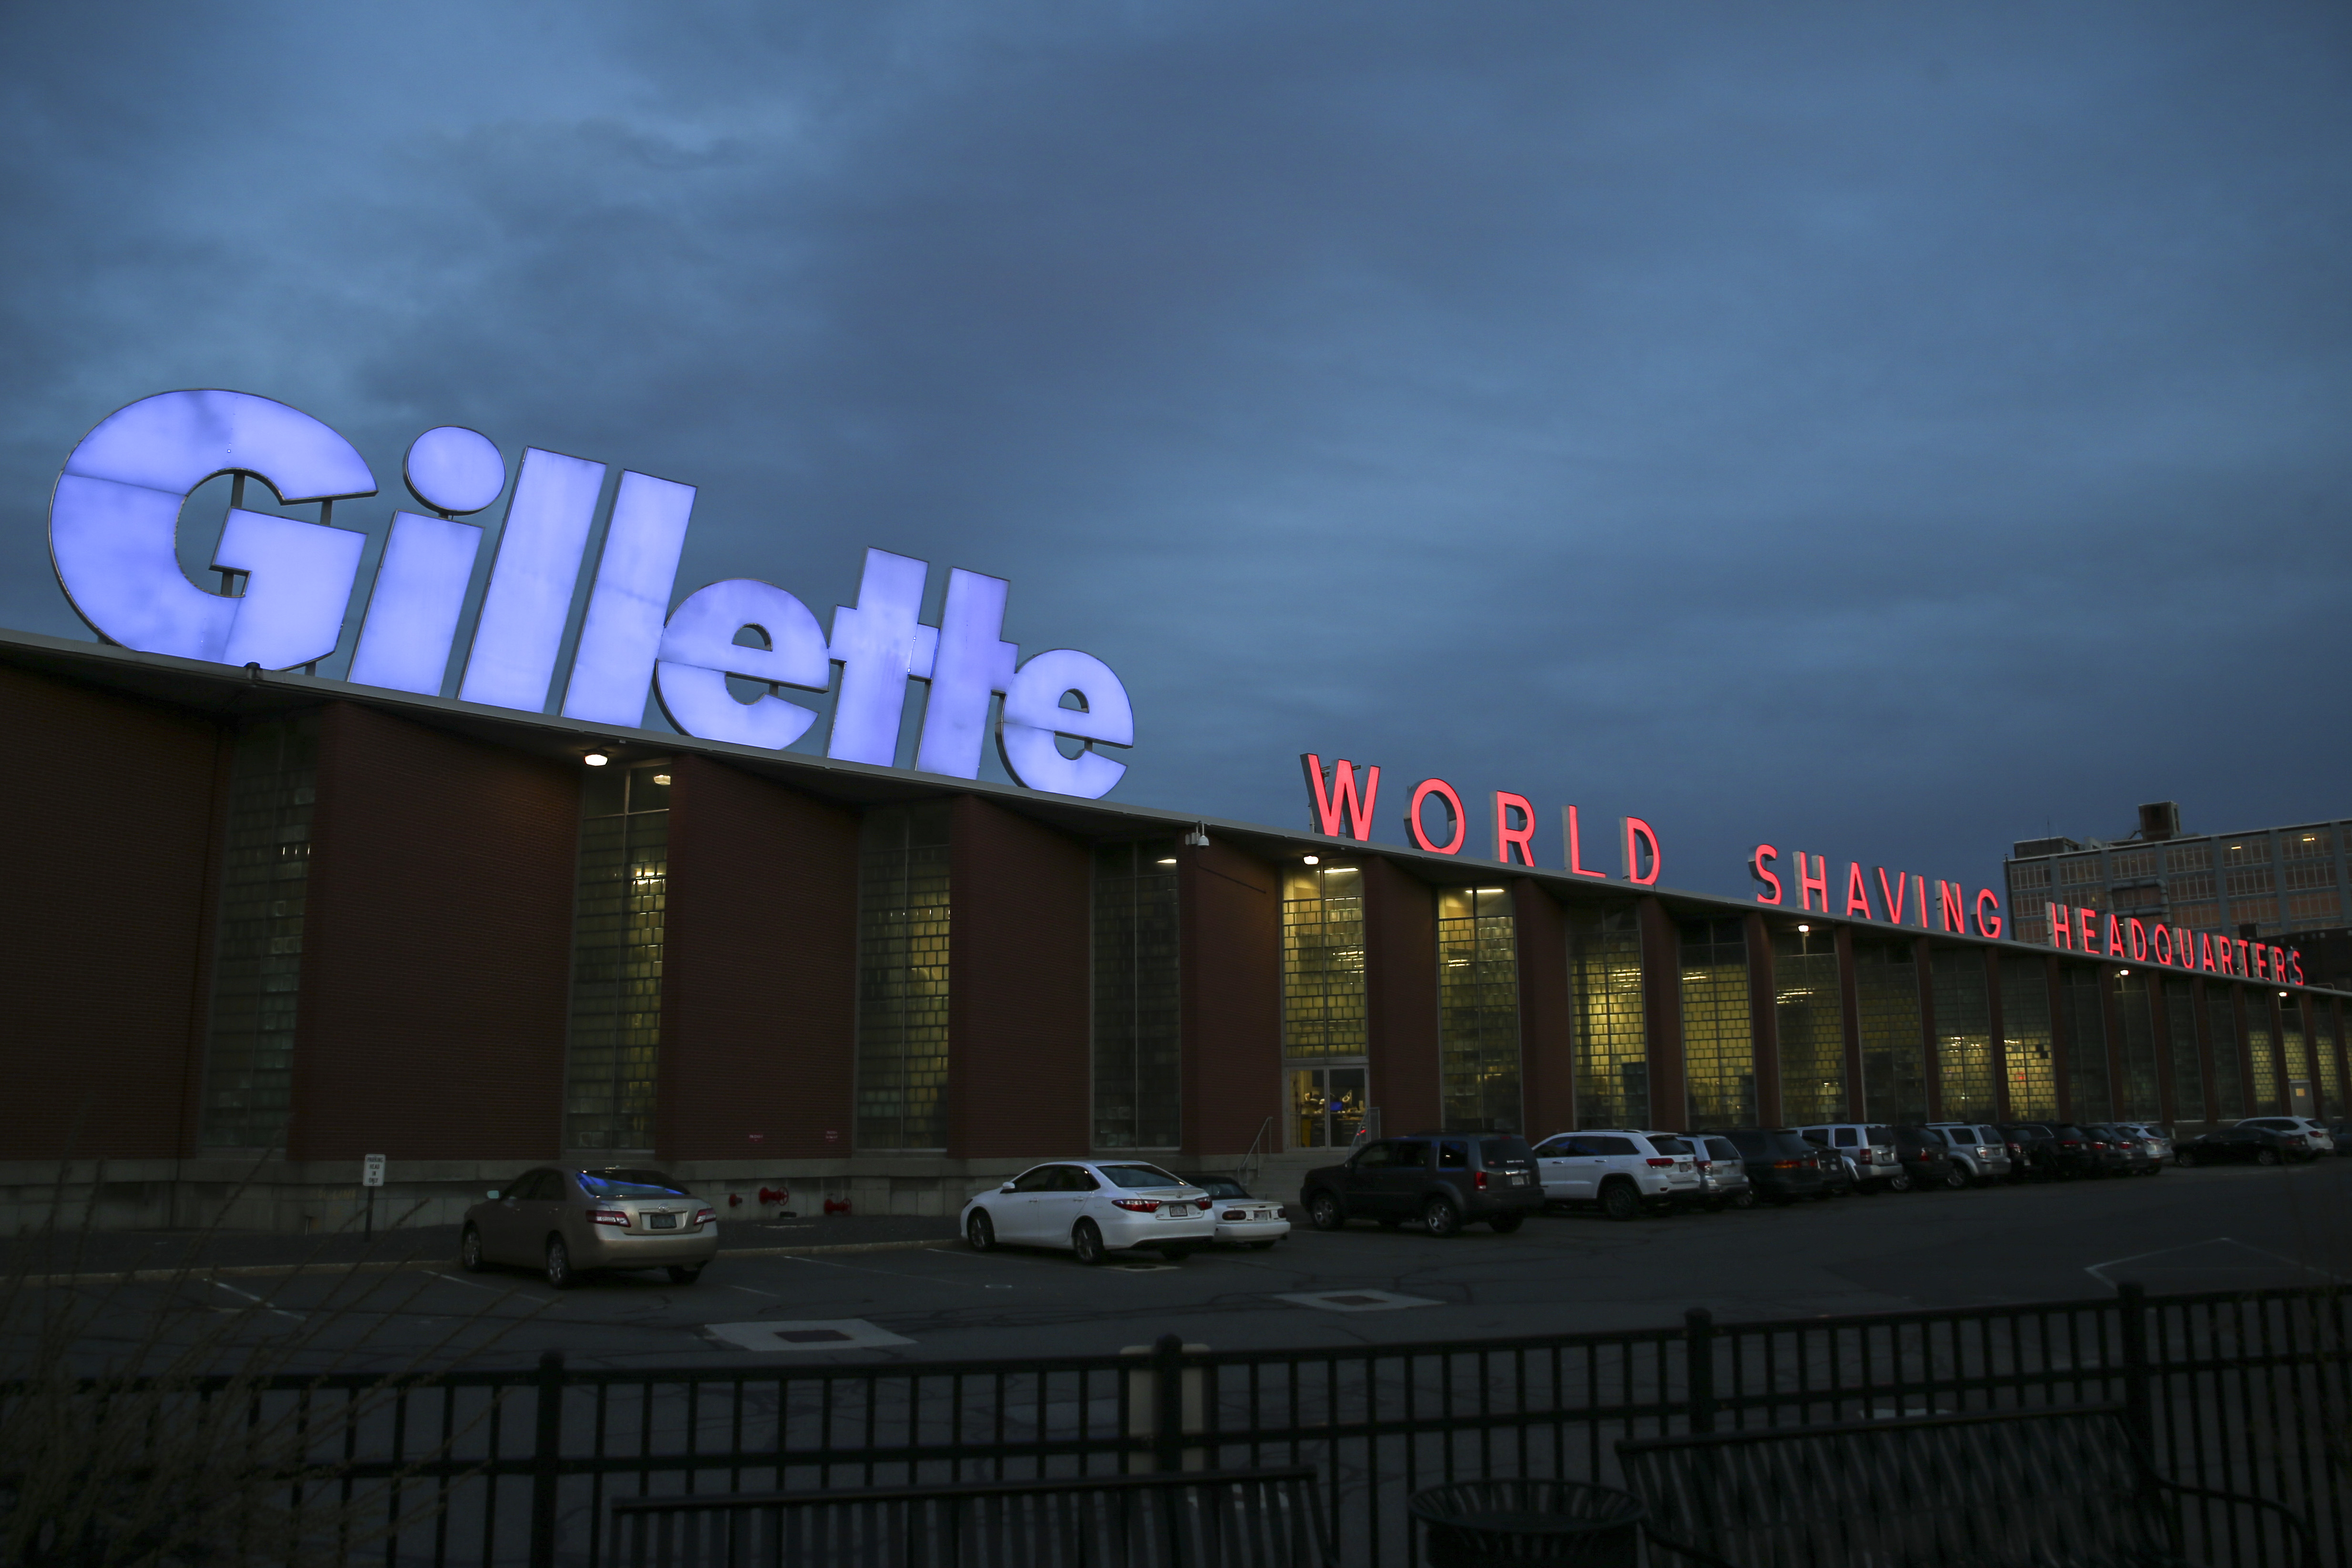 Deep cut: $8 billion in value lopped off Gillette - The